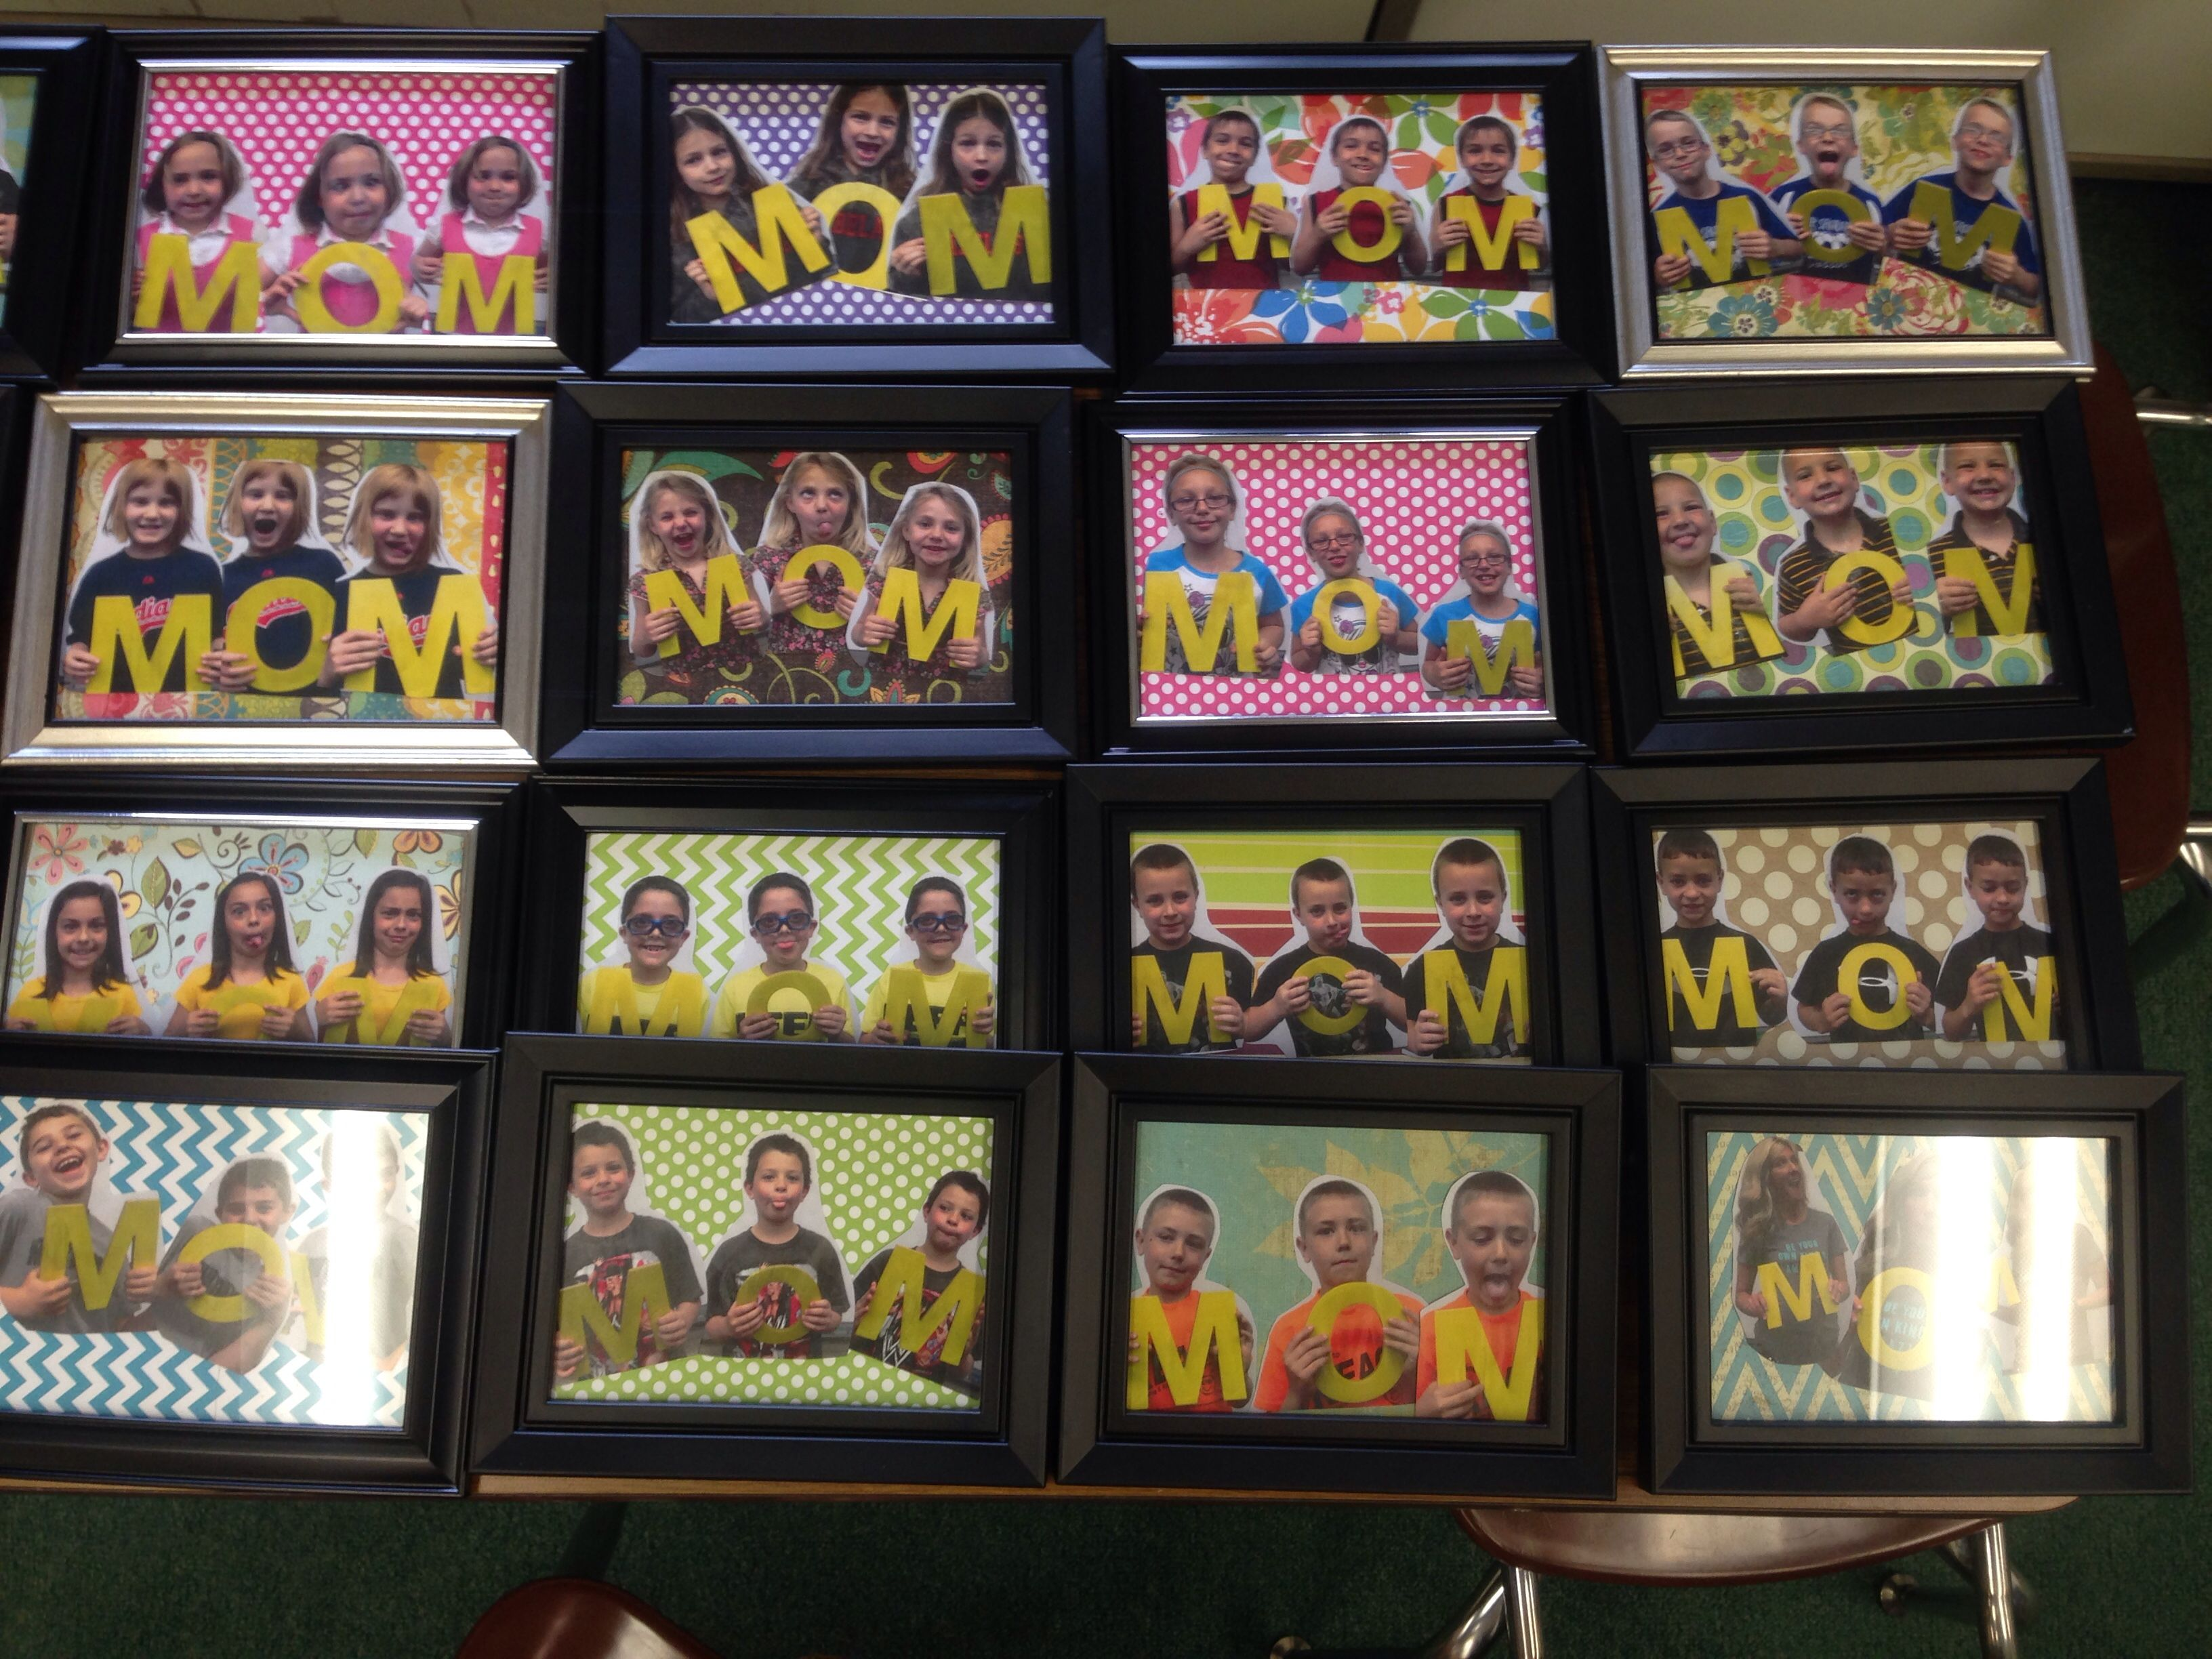 Mothers Day Dollar Store Frames Cardboard Mom From Hobby Lobby